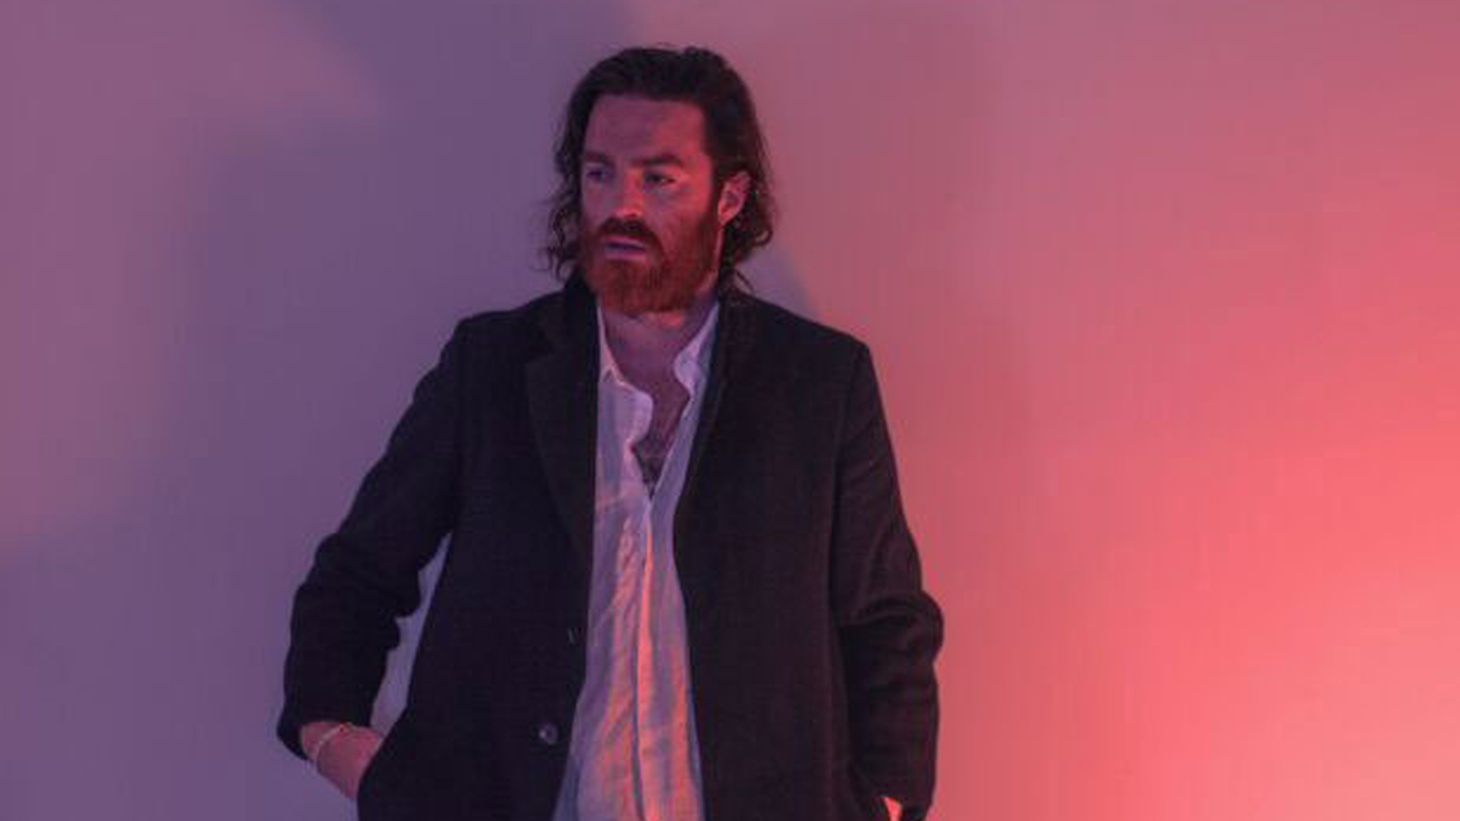 Formerly known as Chet Faker, Nick Murphy announced that he will now write, produce, record and perform under his real name.